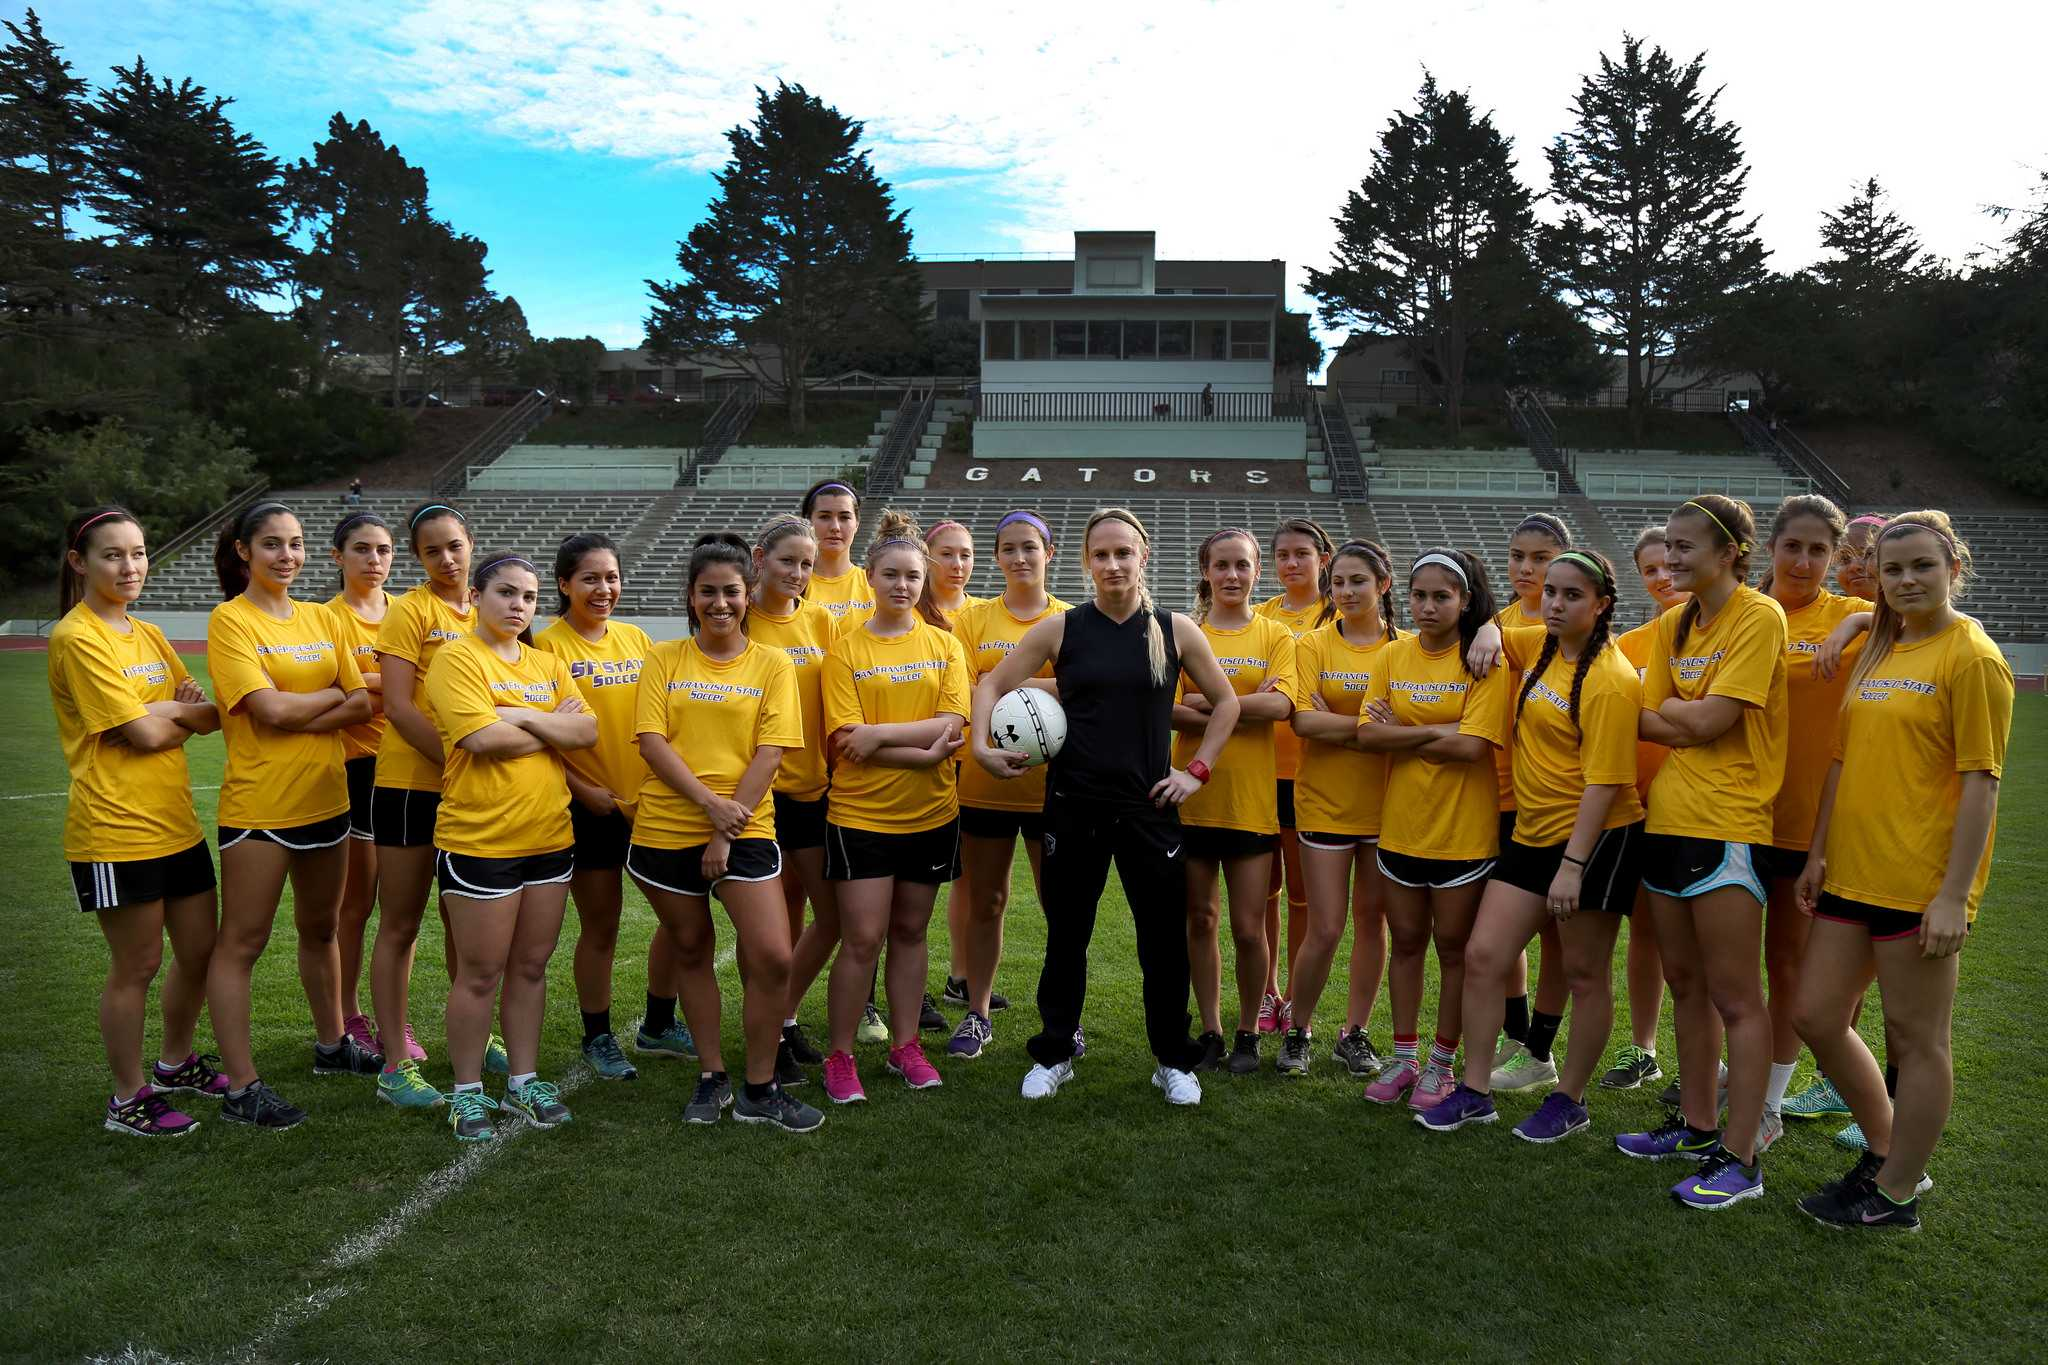 Tracy Hamm, SF State's new Head Women's Soccer Coach is the second in the 33-years, succeeding Jack Hyde. Hamm poses with the team at Cox Stadium Monday, Feb. 2, 2015. (Emma Chiang / Xpress)